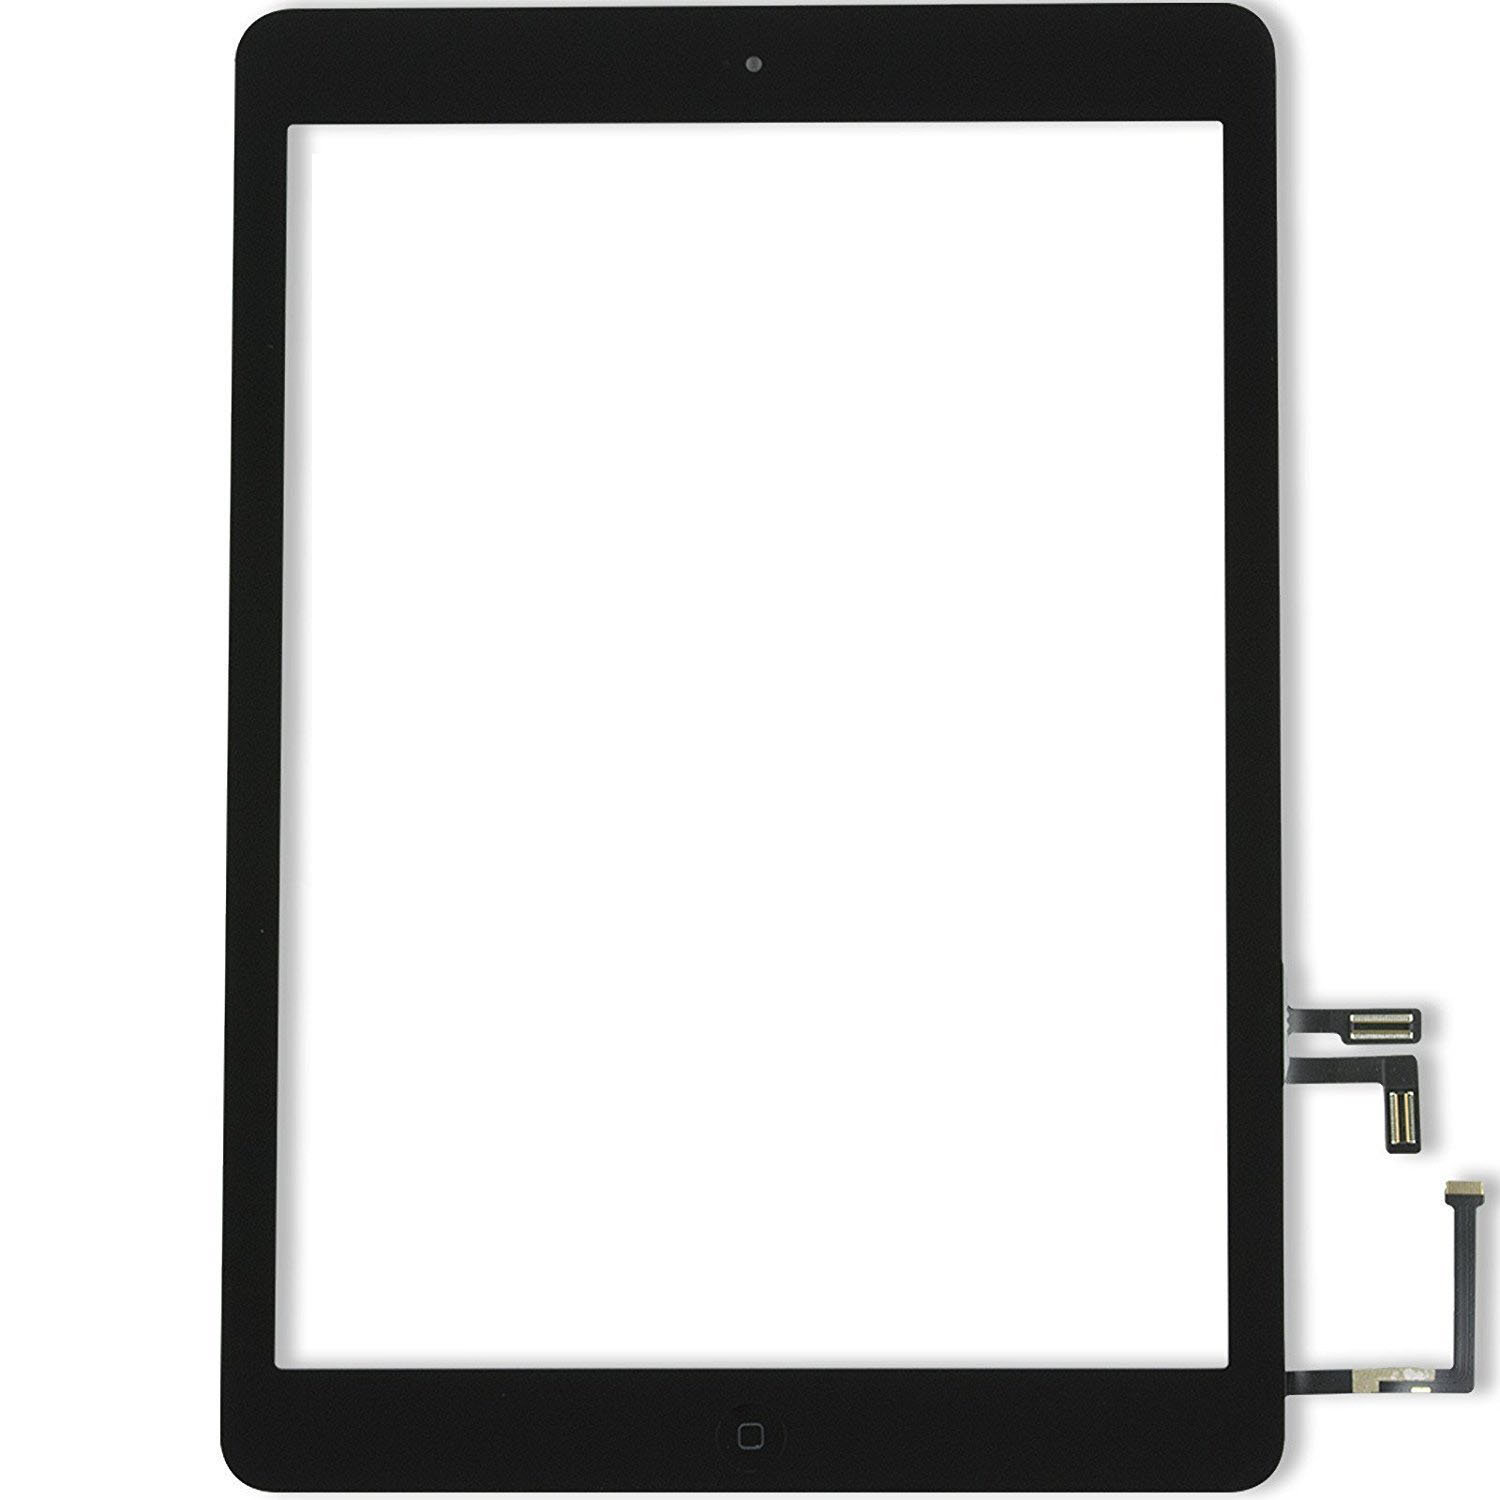 iPad Air 1 Glass & Touch Digitizer Replacement - Black - Original Quality